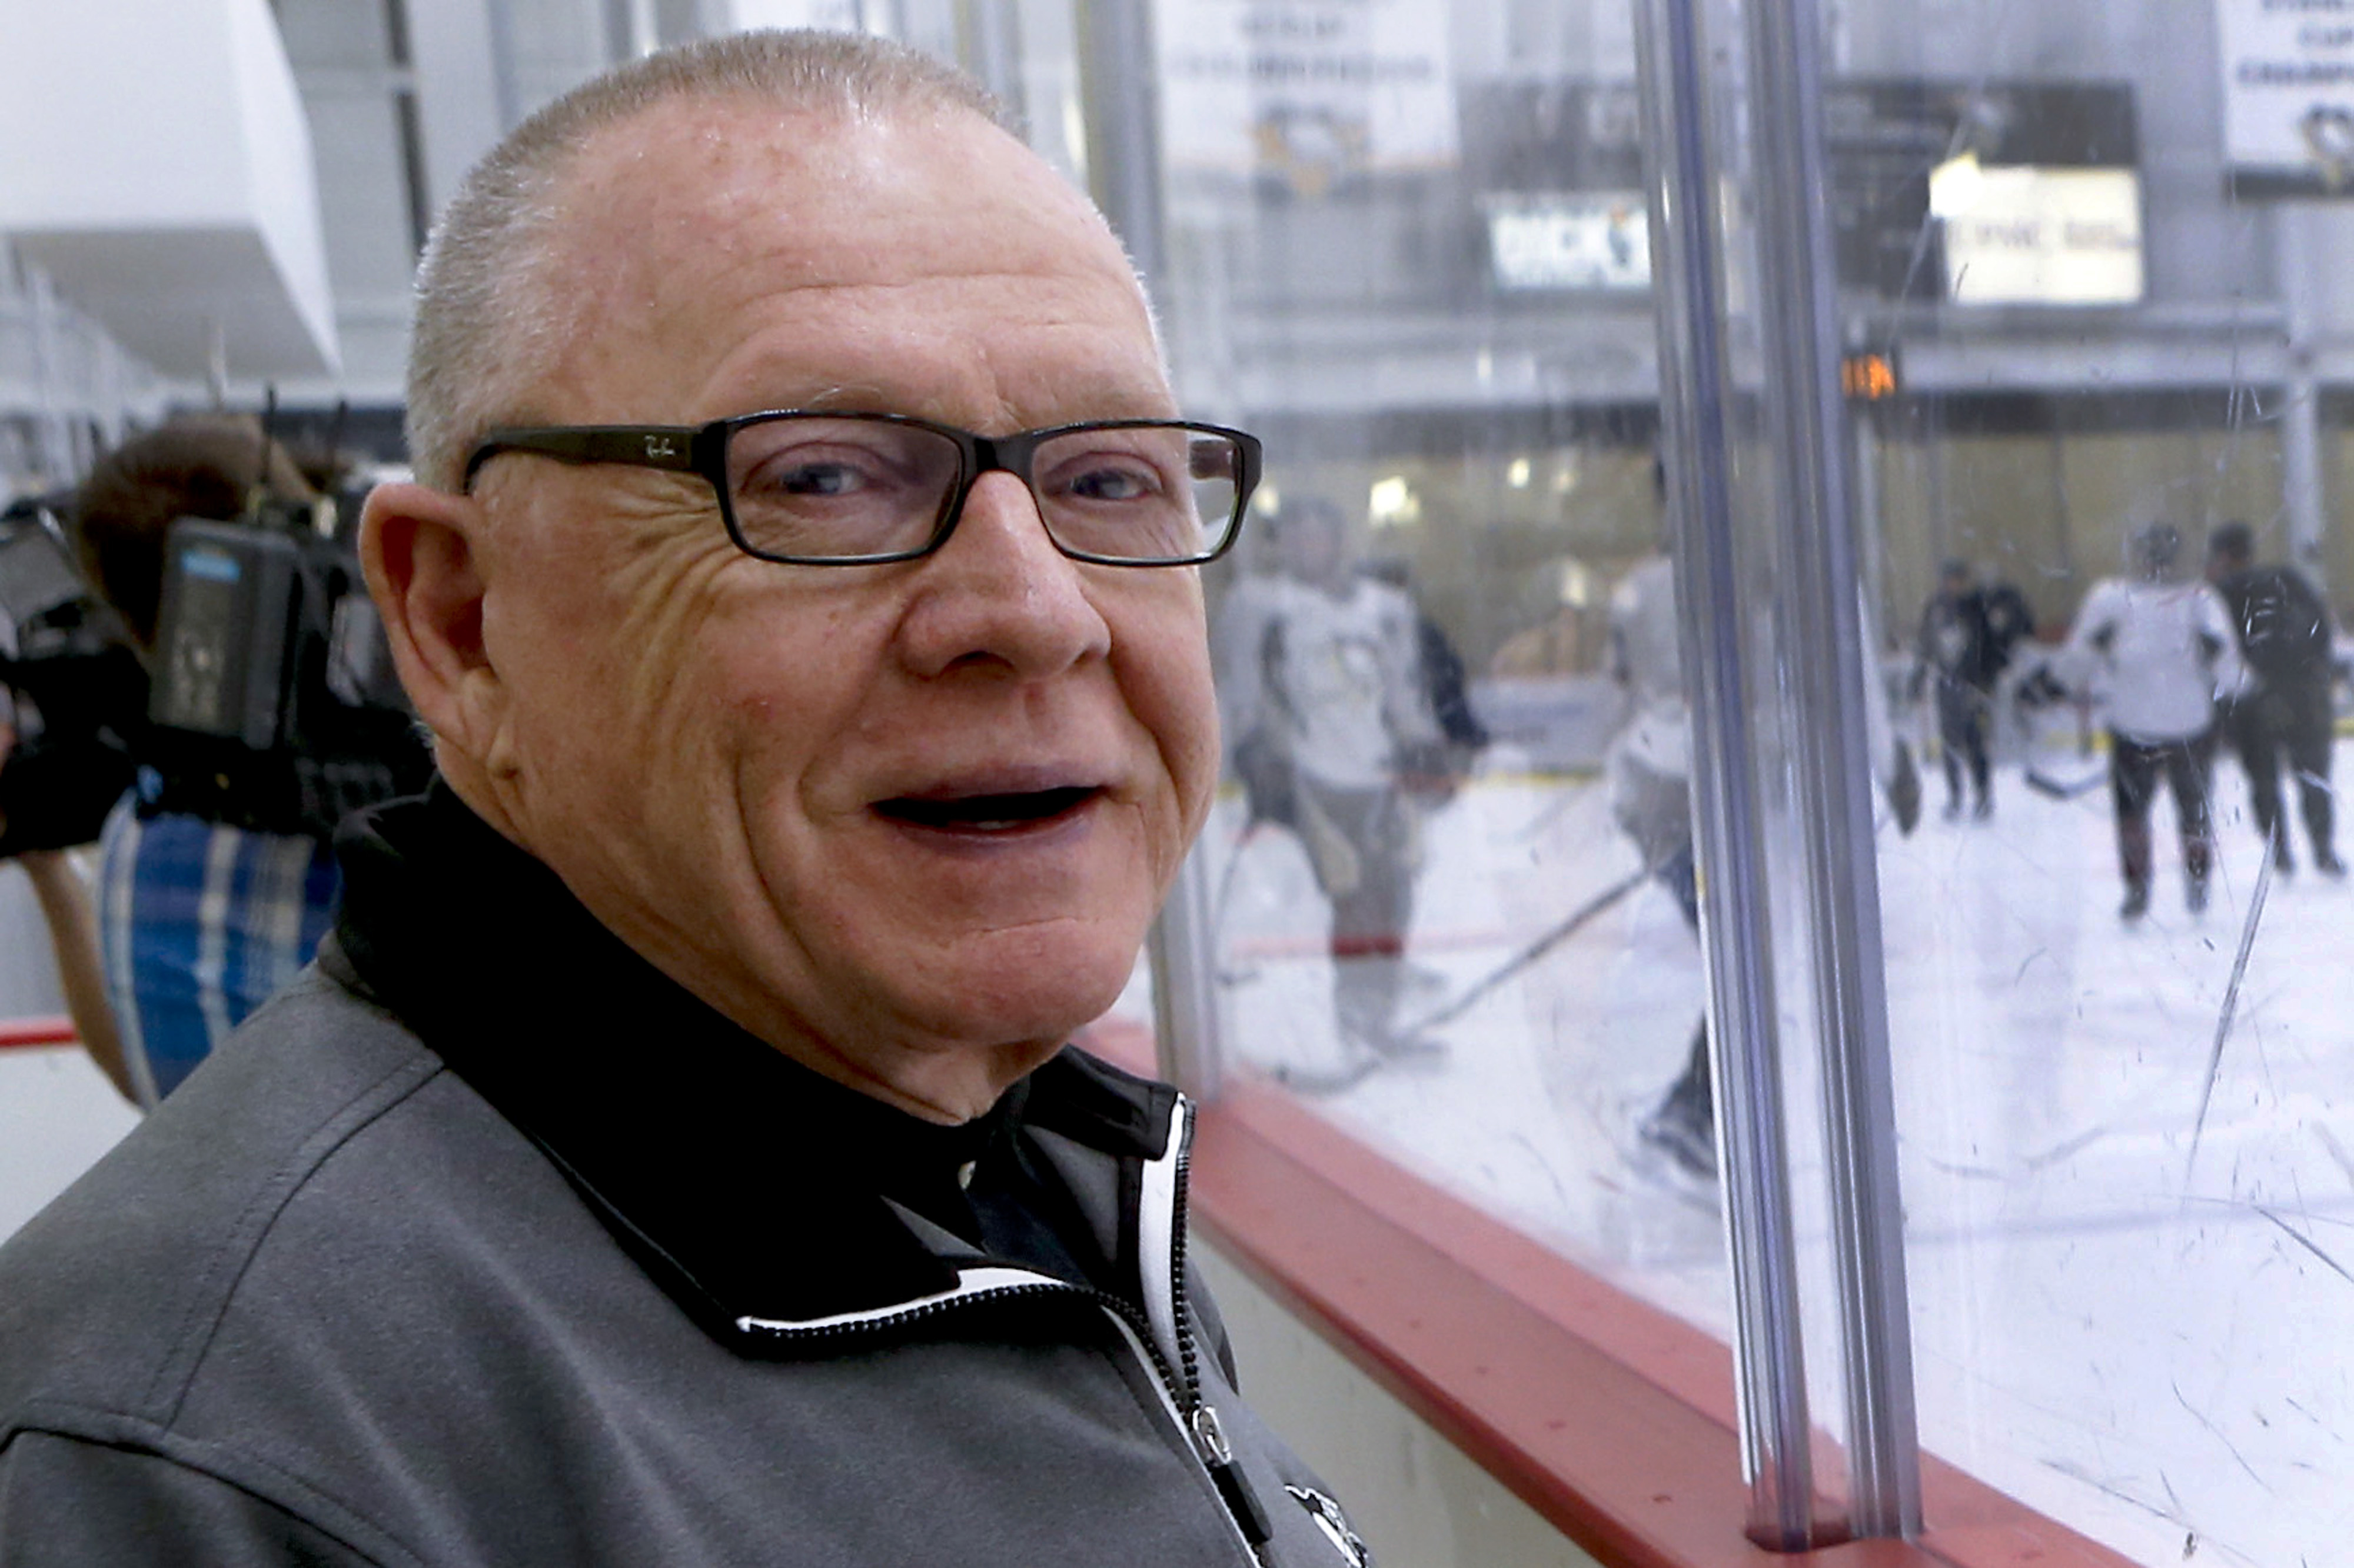 Pittsburgh Penguins general manager Jim Rutherford stands behind the glass as the team works out during NHL hockey practice at the UPMC Lemieux Sports Complex, Saturday, May 28, 2016, in Cranberry, Pa. The Penguins host the San Jose Sharks in Game 1 of th